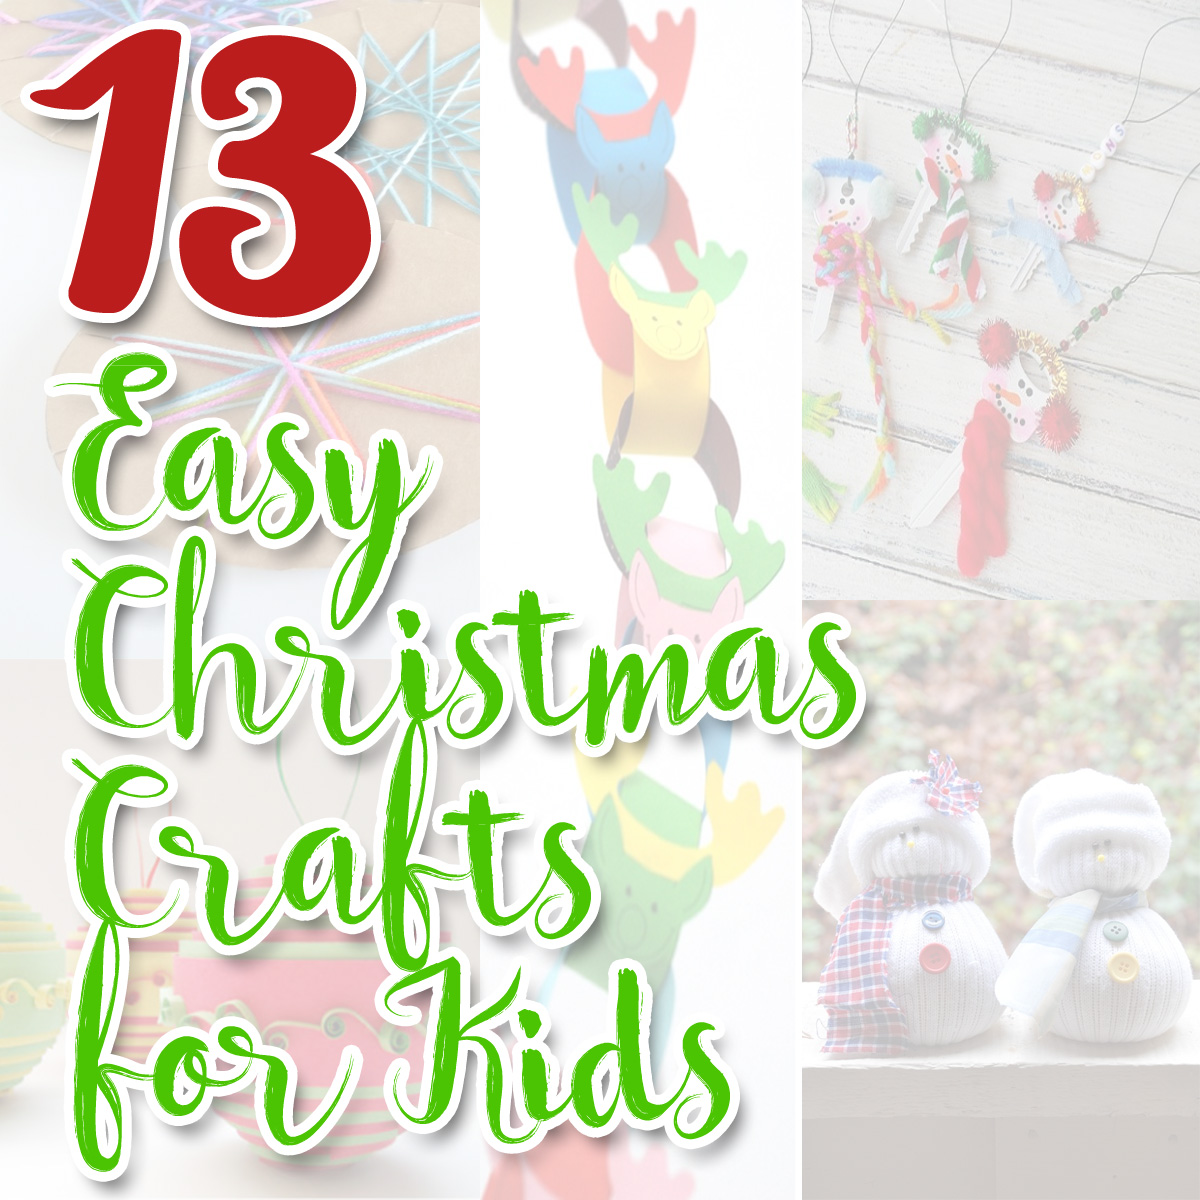 Kids Christmas Crafts 13 Easy Christmas Crafts For Kids Frugal Family Fair